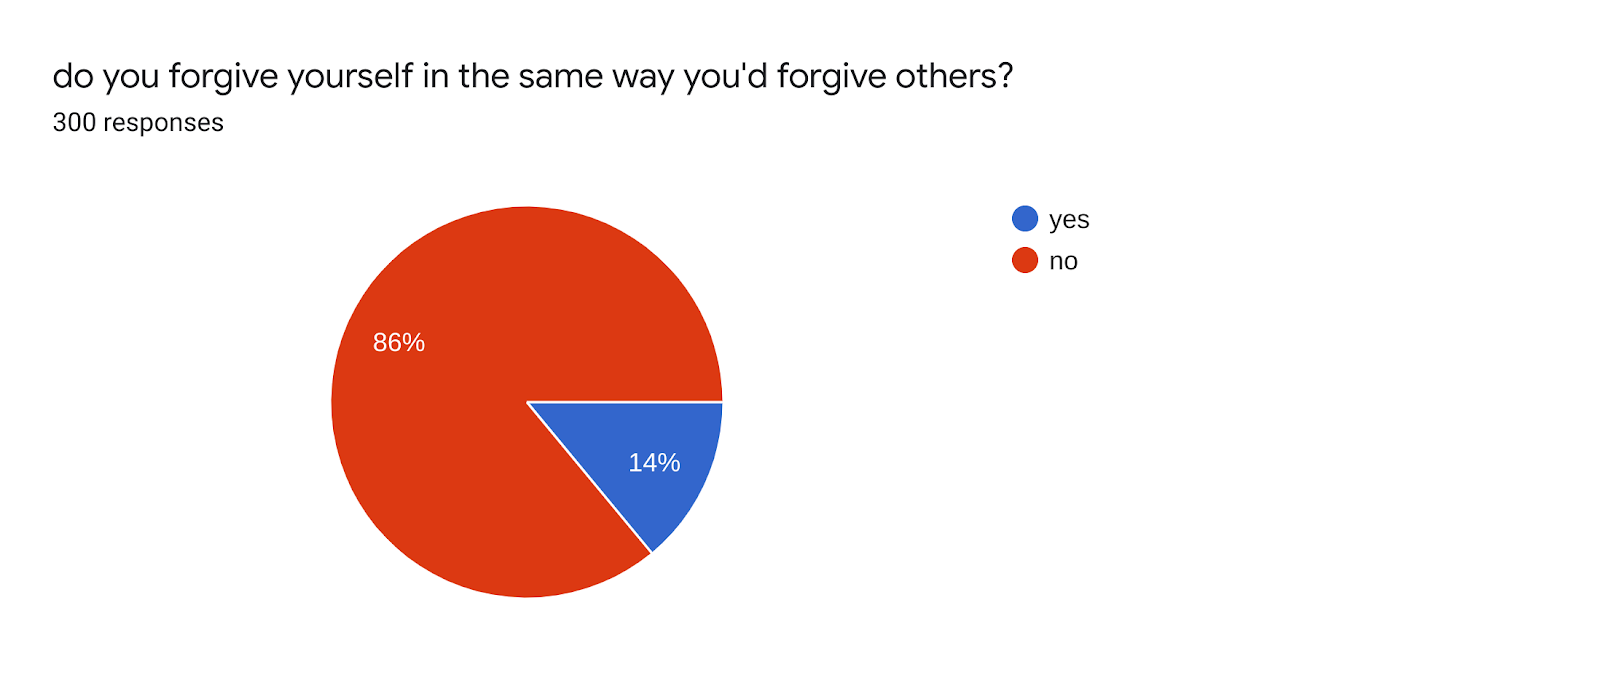 Forms response chart. Question title: do you forgive yourself in the same way you'd forgive others?. Number of responses: 300 responses.